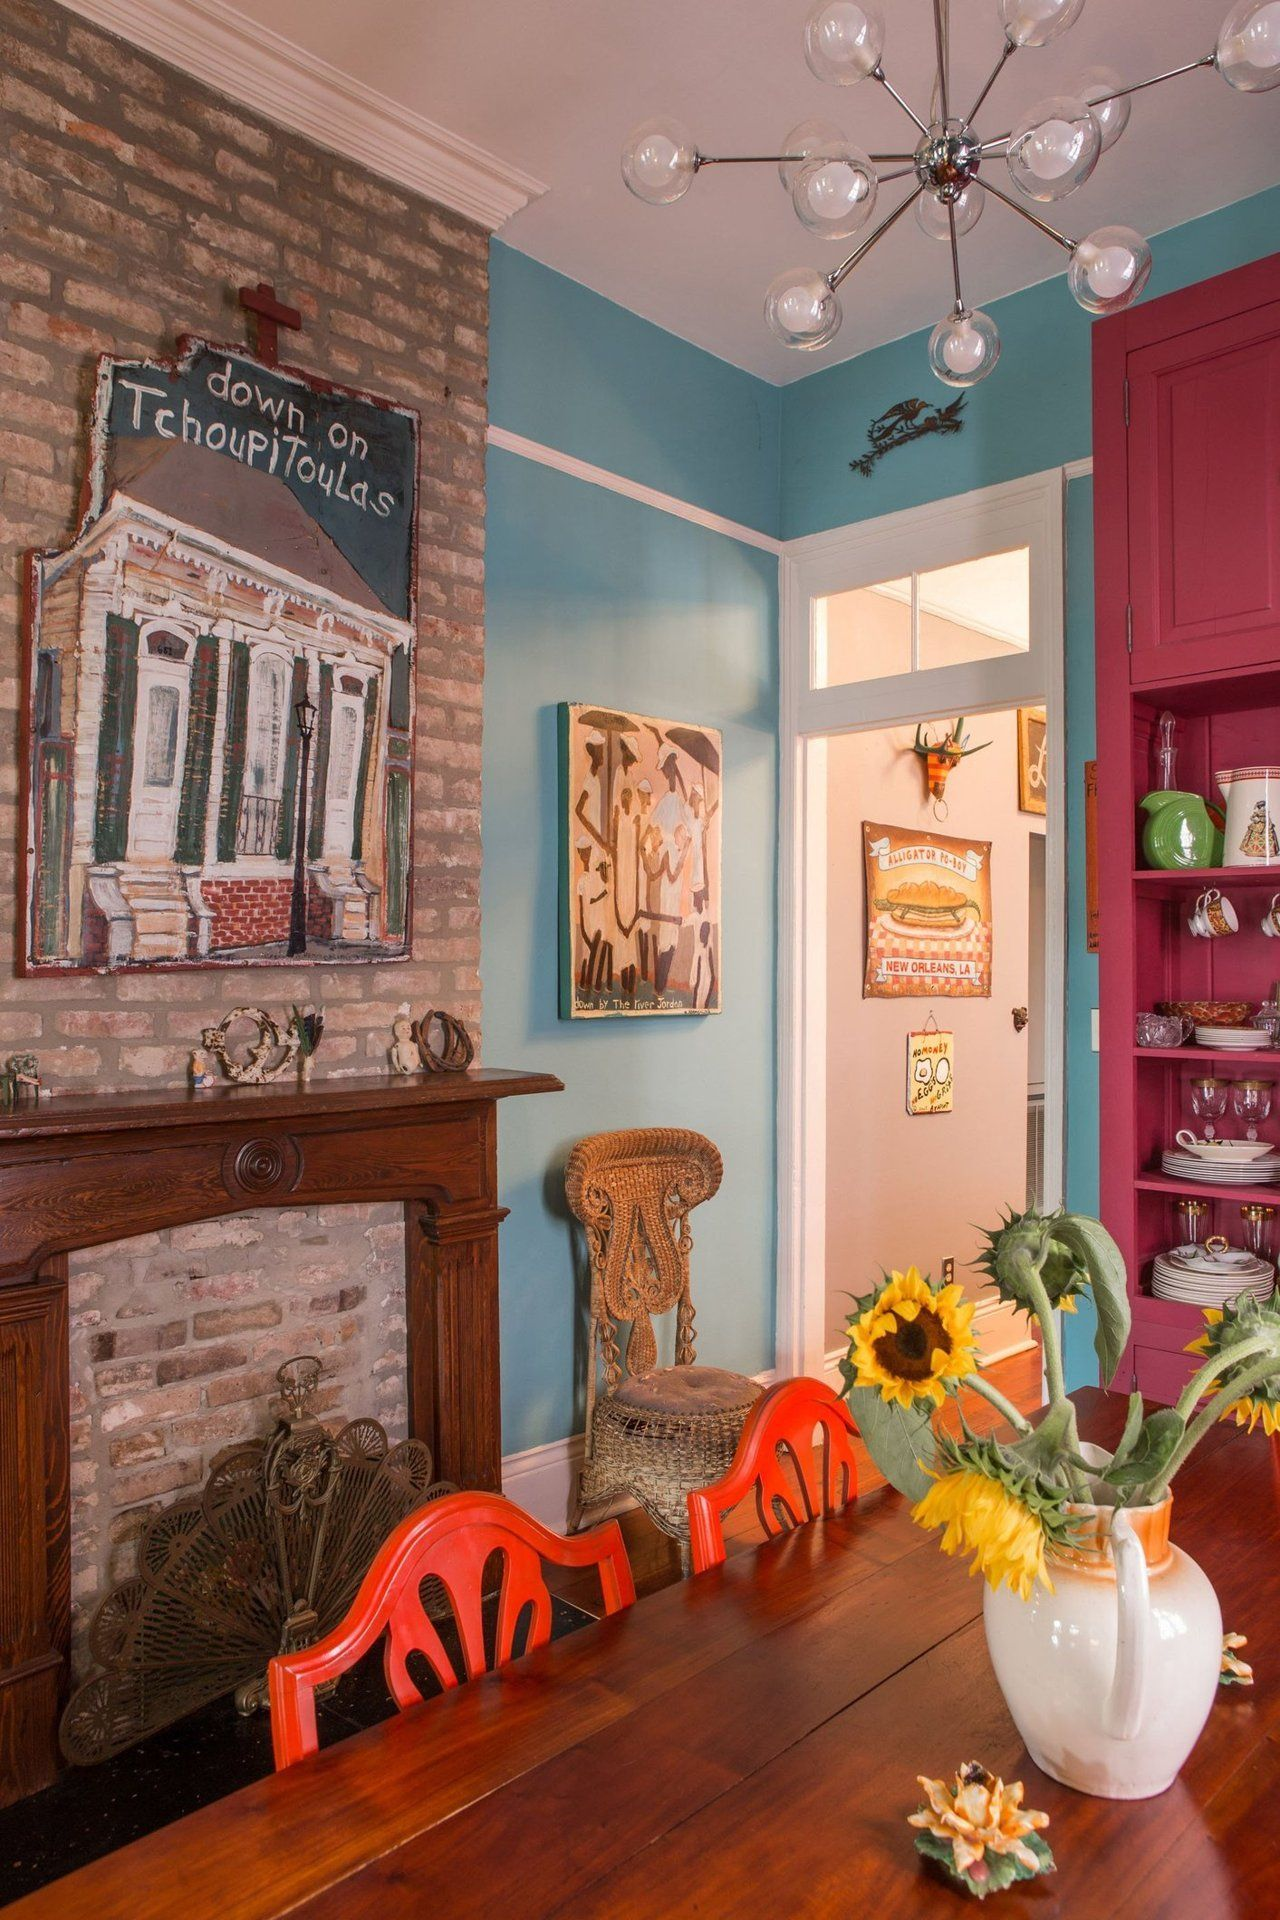 Mr P Home Design Quarter Part - 50: House Tour: A Colorful, Art-Filled New Orleans Home